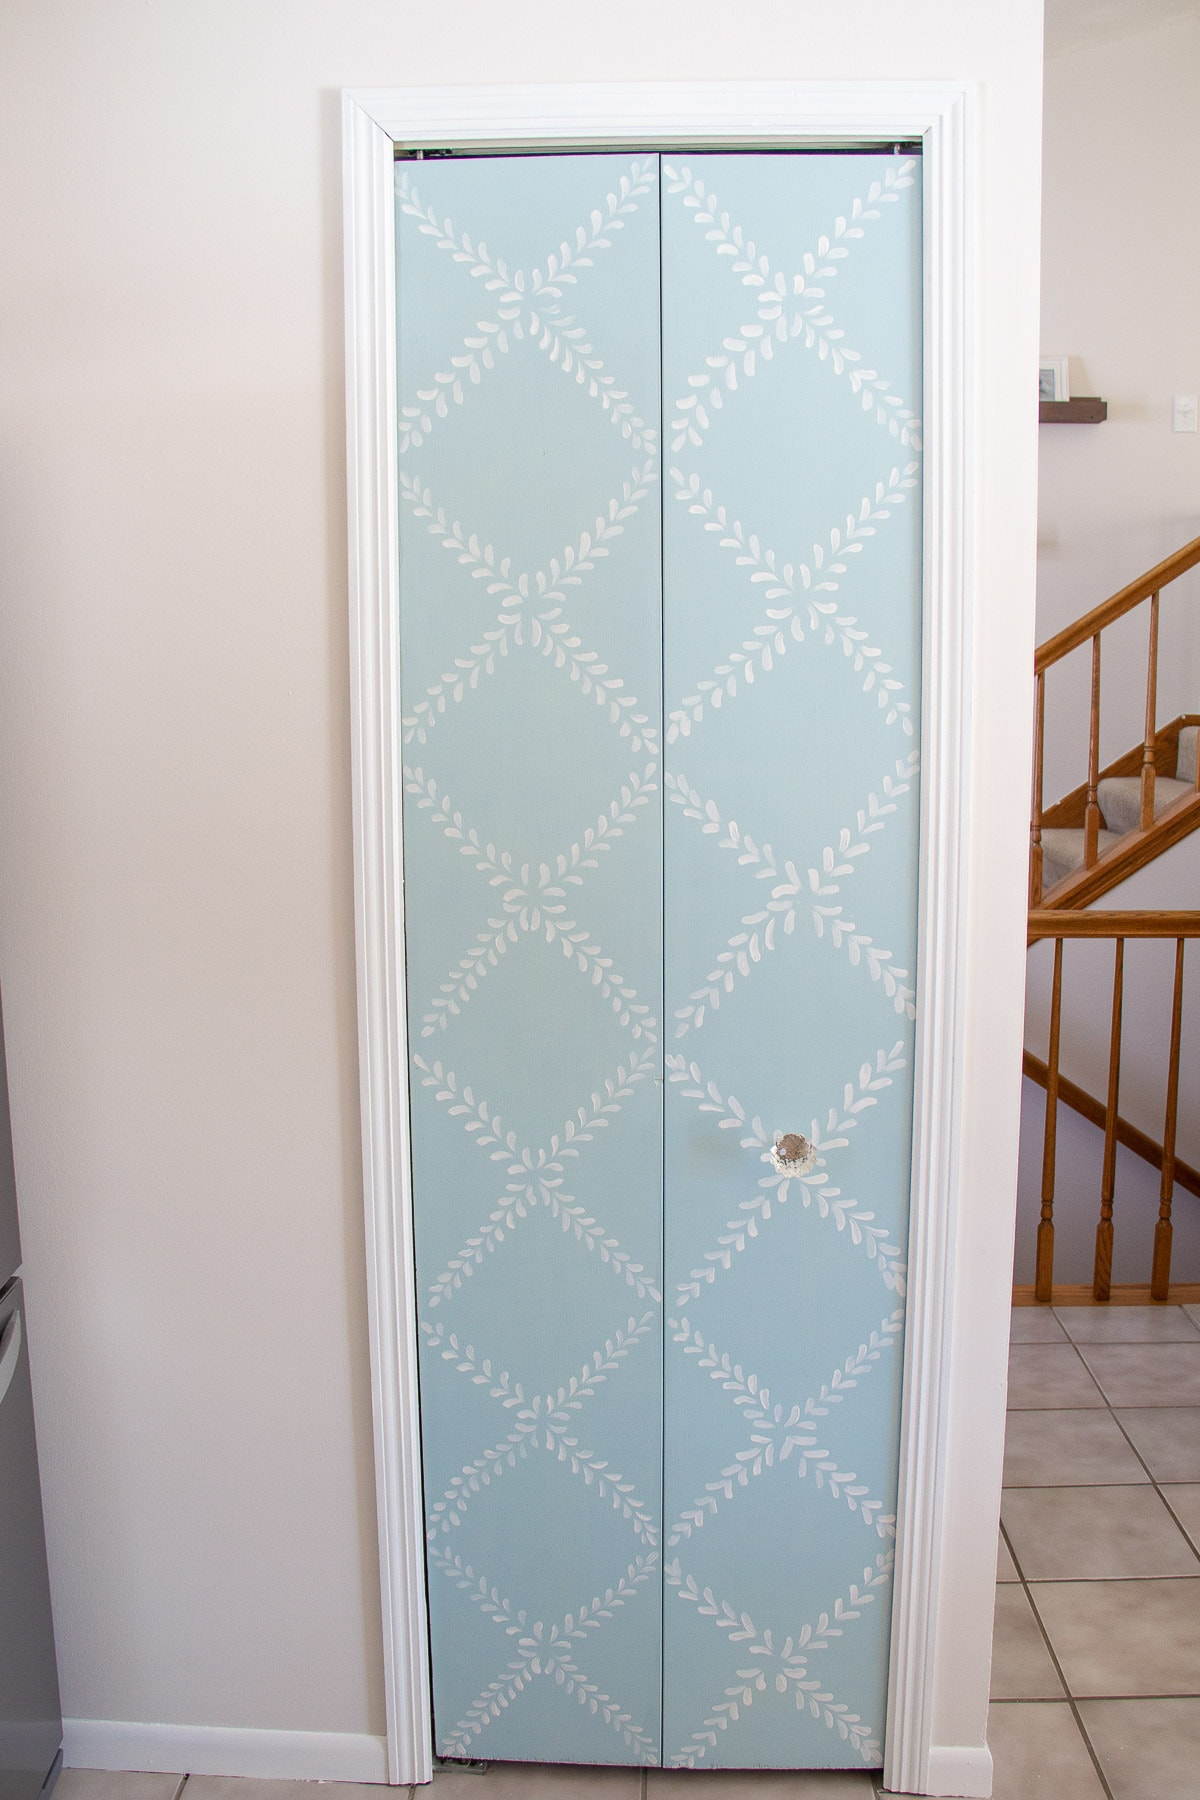 A bi-fold pantry door painted with light blue chalk paint and a floral design.